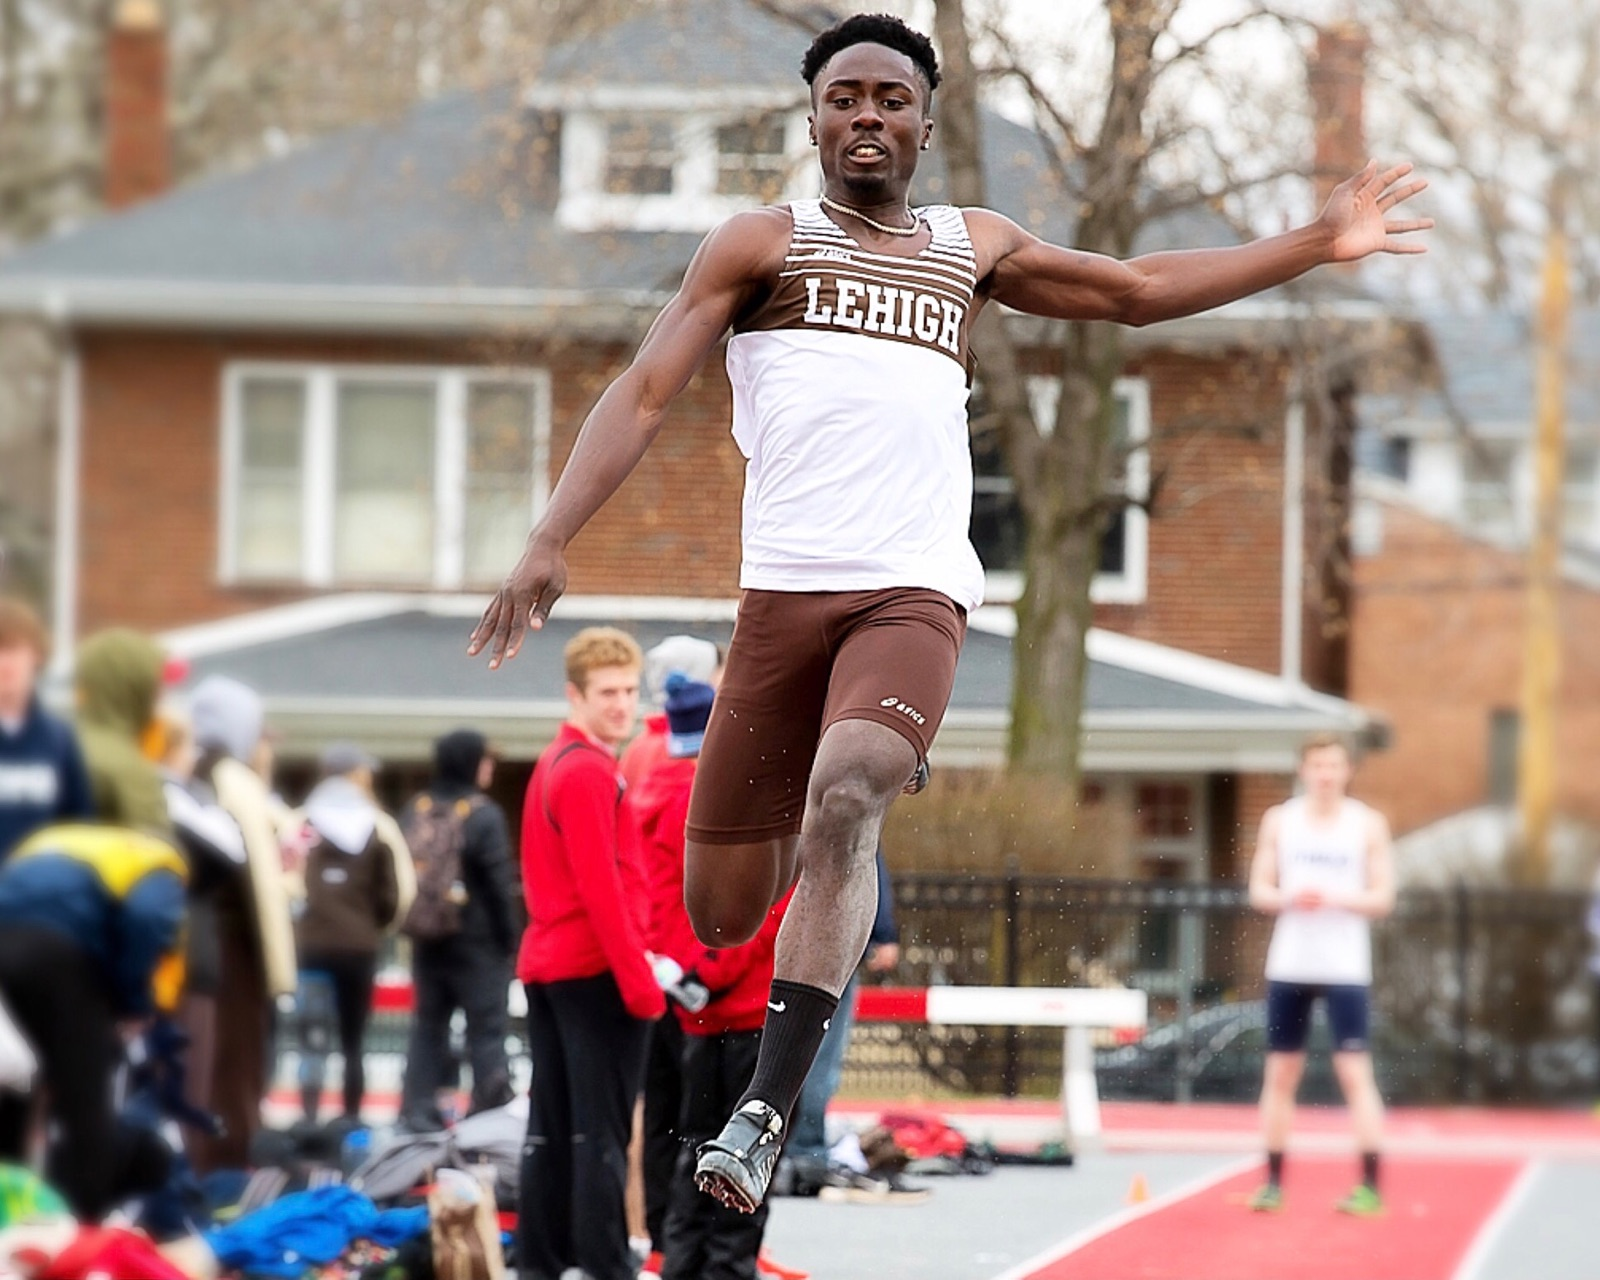 Near the end of his high school career, Juwon transitioned from sprinting to the triple jump and long jump events. He now attends Lehigh University.